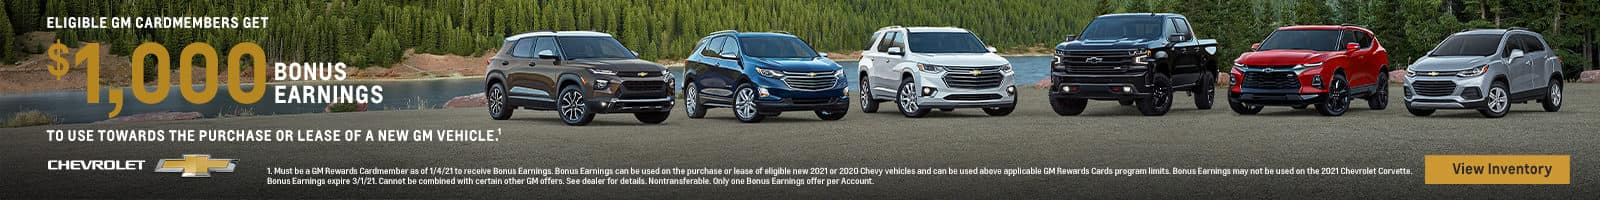 ELIGIBLE GM CARDMEMBERS GET $1,000 BONUS EARNINGS TO USE TOWARDS THE PURCHASE OF LEASE OF A NEW GM VEHICLE.